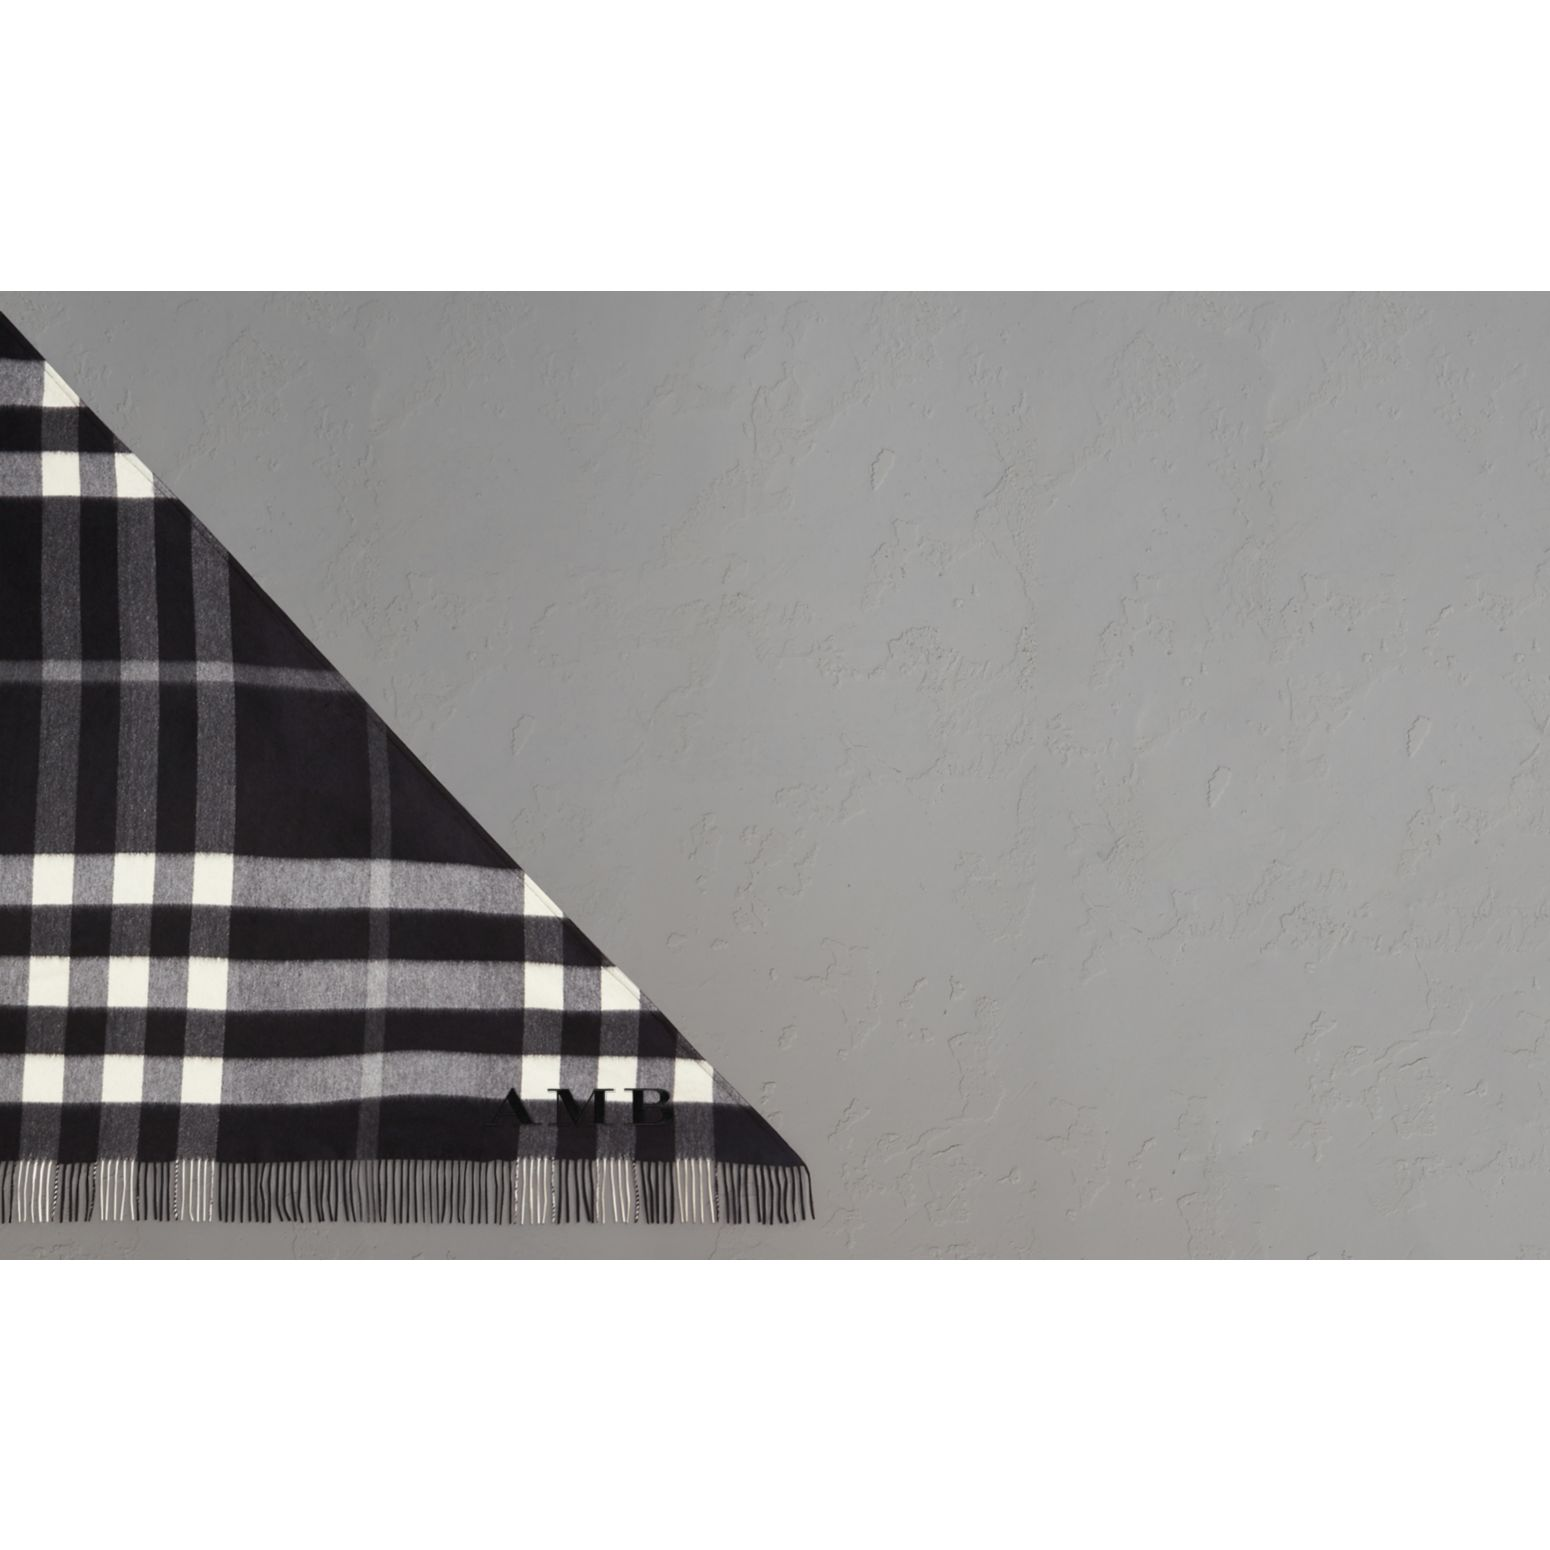 The Burberry Bandana in Check Cashmere in Black | Burberry Singapore - gallery image 1